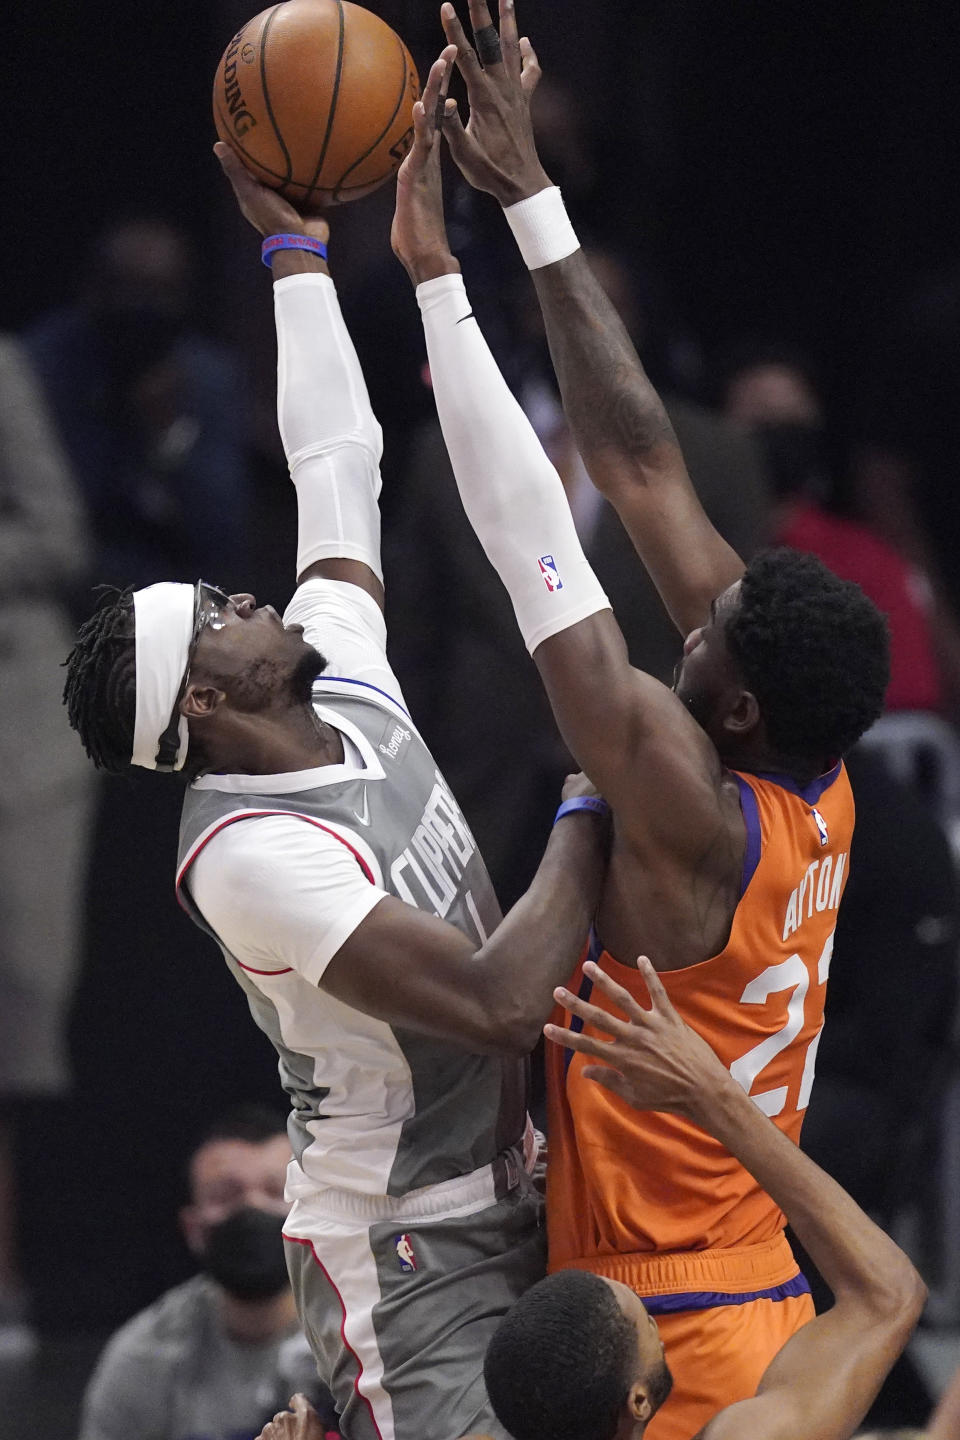 Los Angeles Clippers guard Reggie Jackson, left, shoots as Phoenix Suns center Deandre Ayton defends during the first half in Game 4 of the NBA basketball Western Conference Finals Saturday, June 26, 2021, in Los Angeles. (AP Photo/Mark J. Terrill)